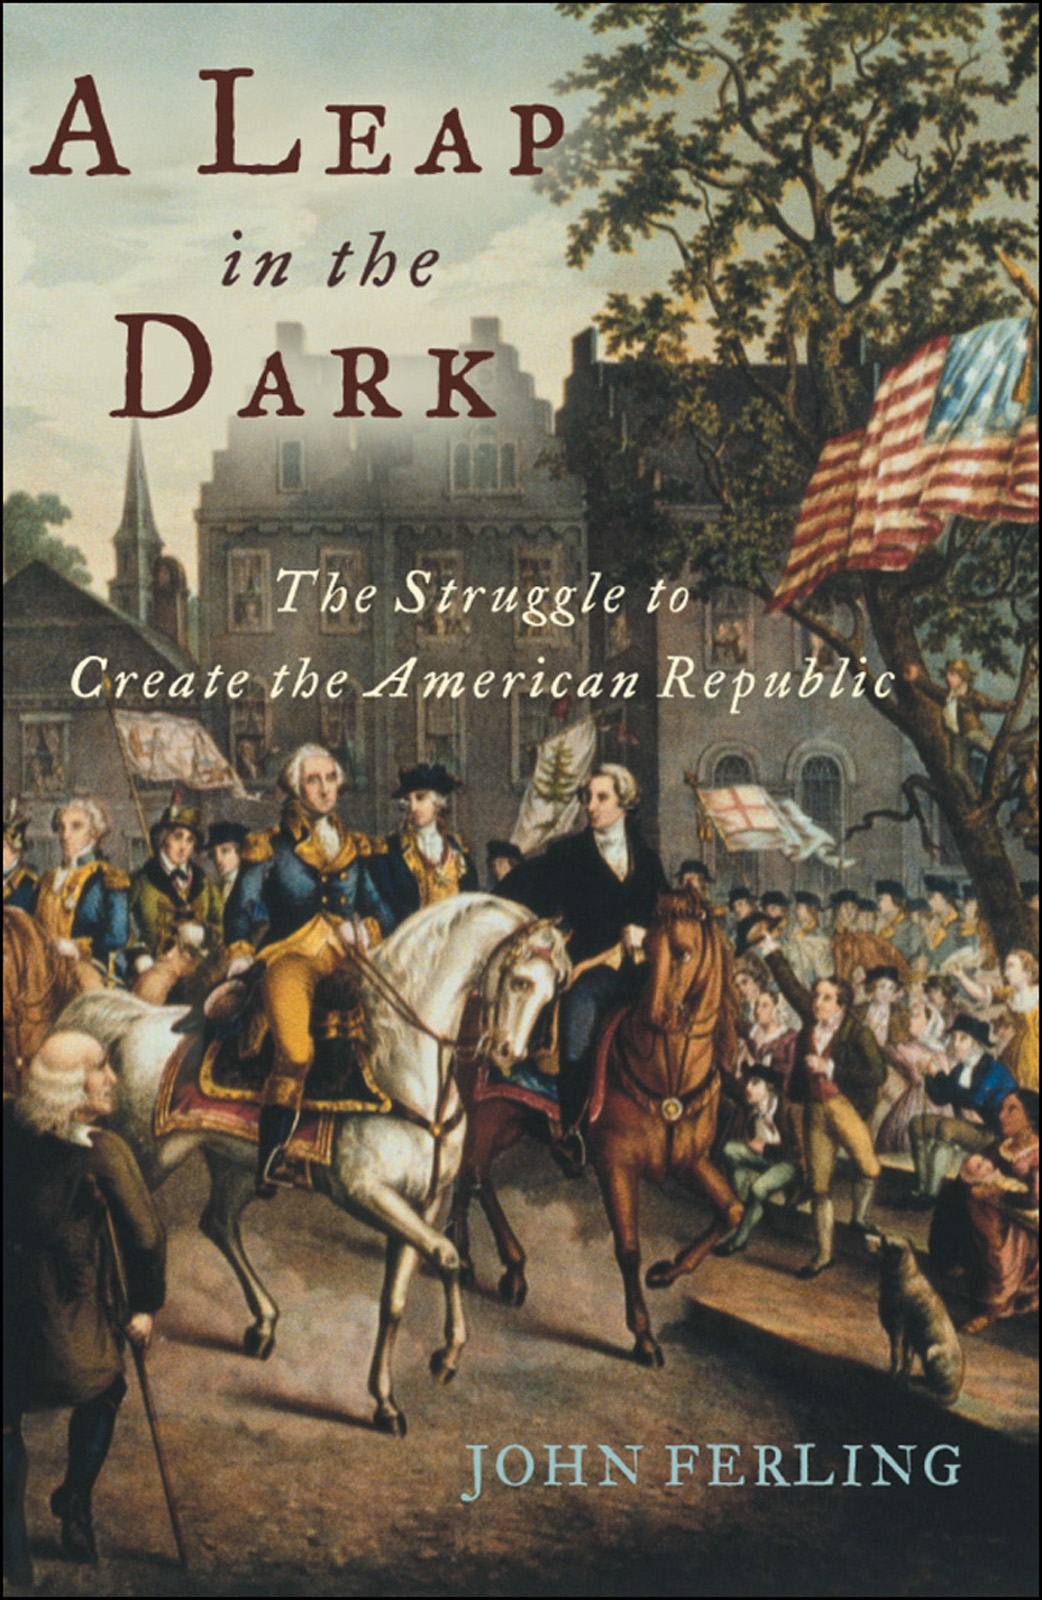 A Leap in the Dark:The Struggle to Create the American Republic  By: John Ferling